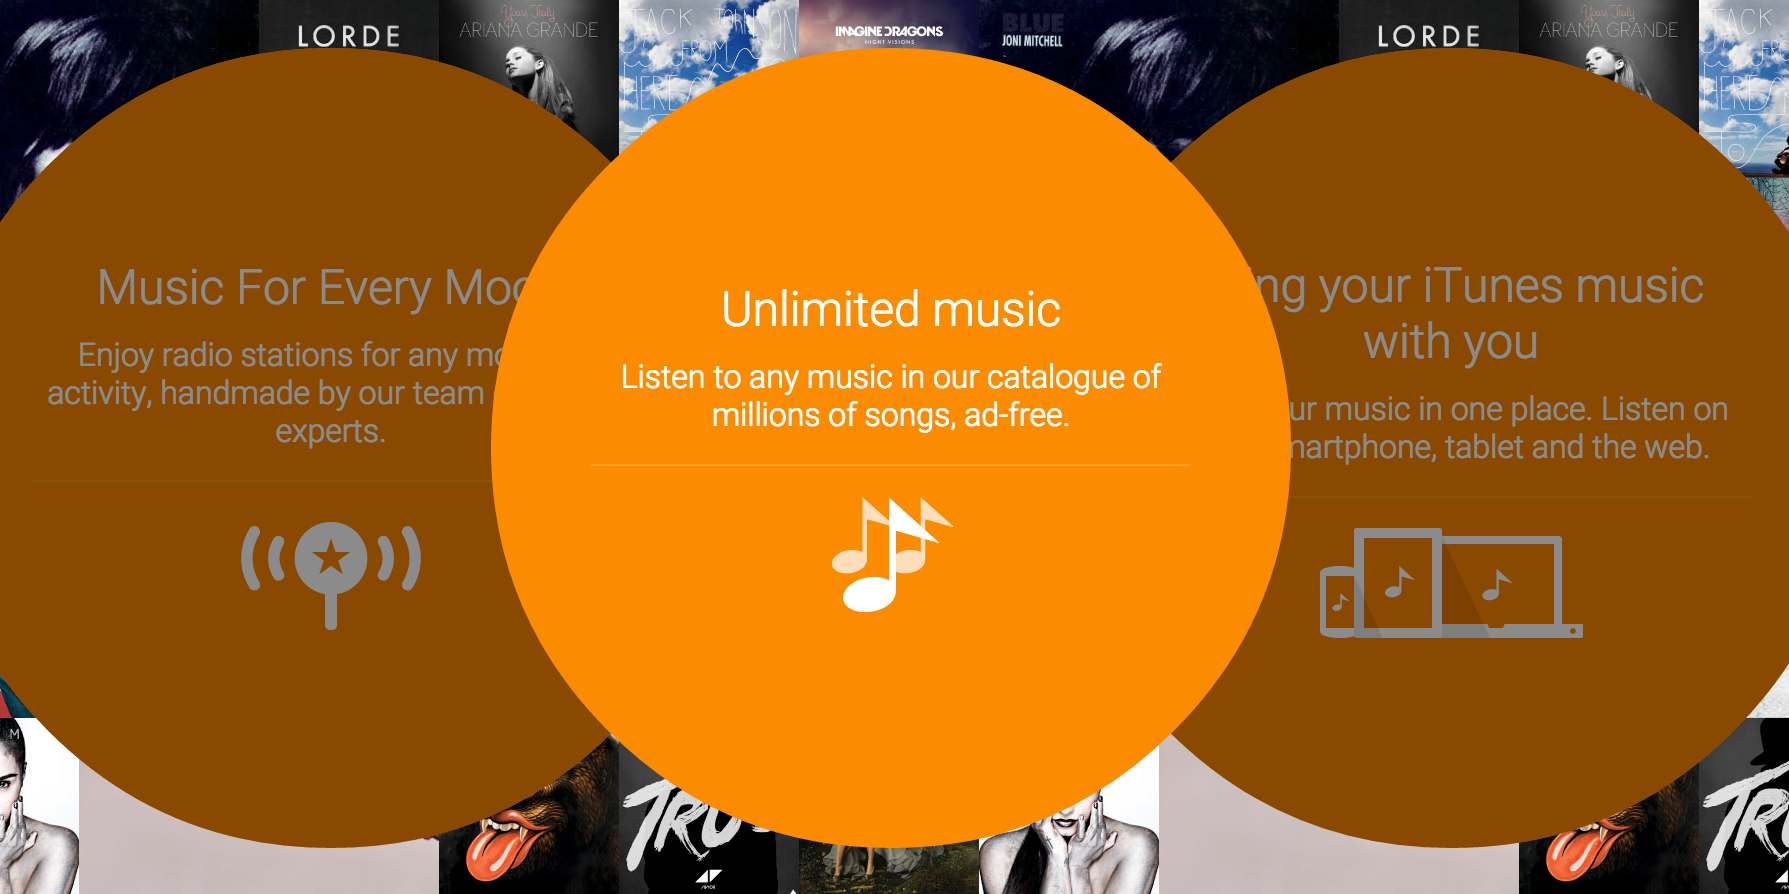 unlimited-all-access-music-google-play-sale-01 Google Play Music: Familienoption für 14,99 ab sofort verfügbar Entertainment Google Android Smartphones Software Tablet Technology